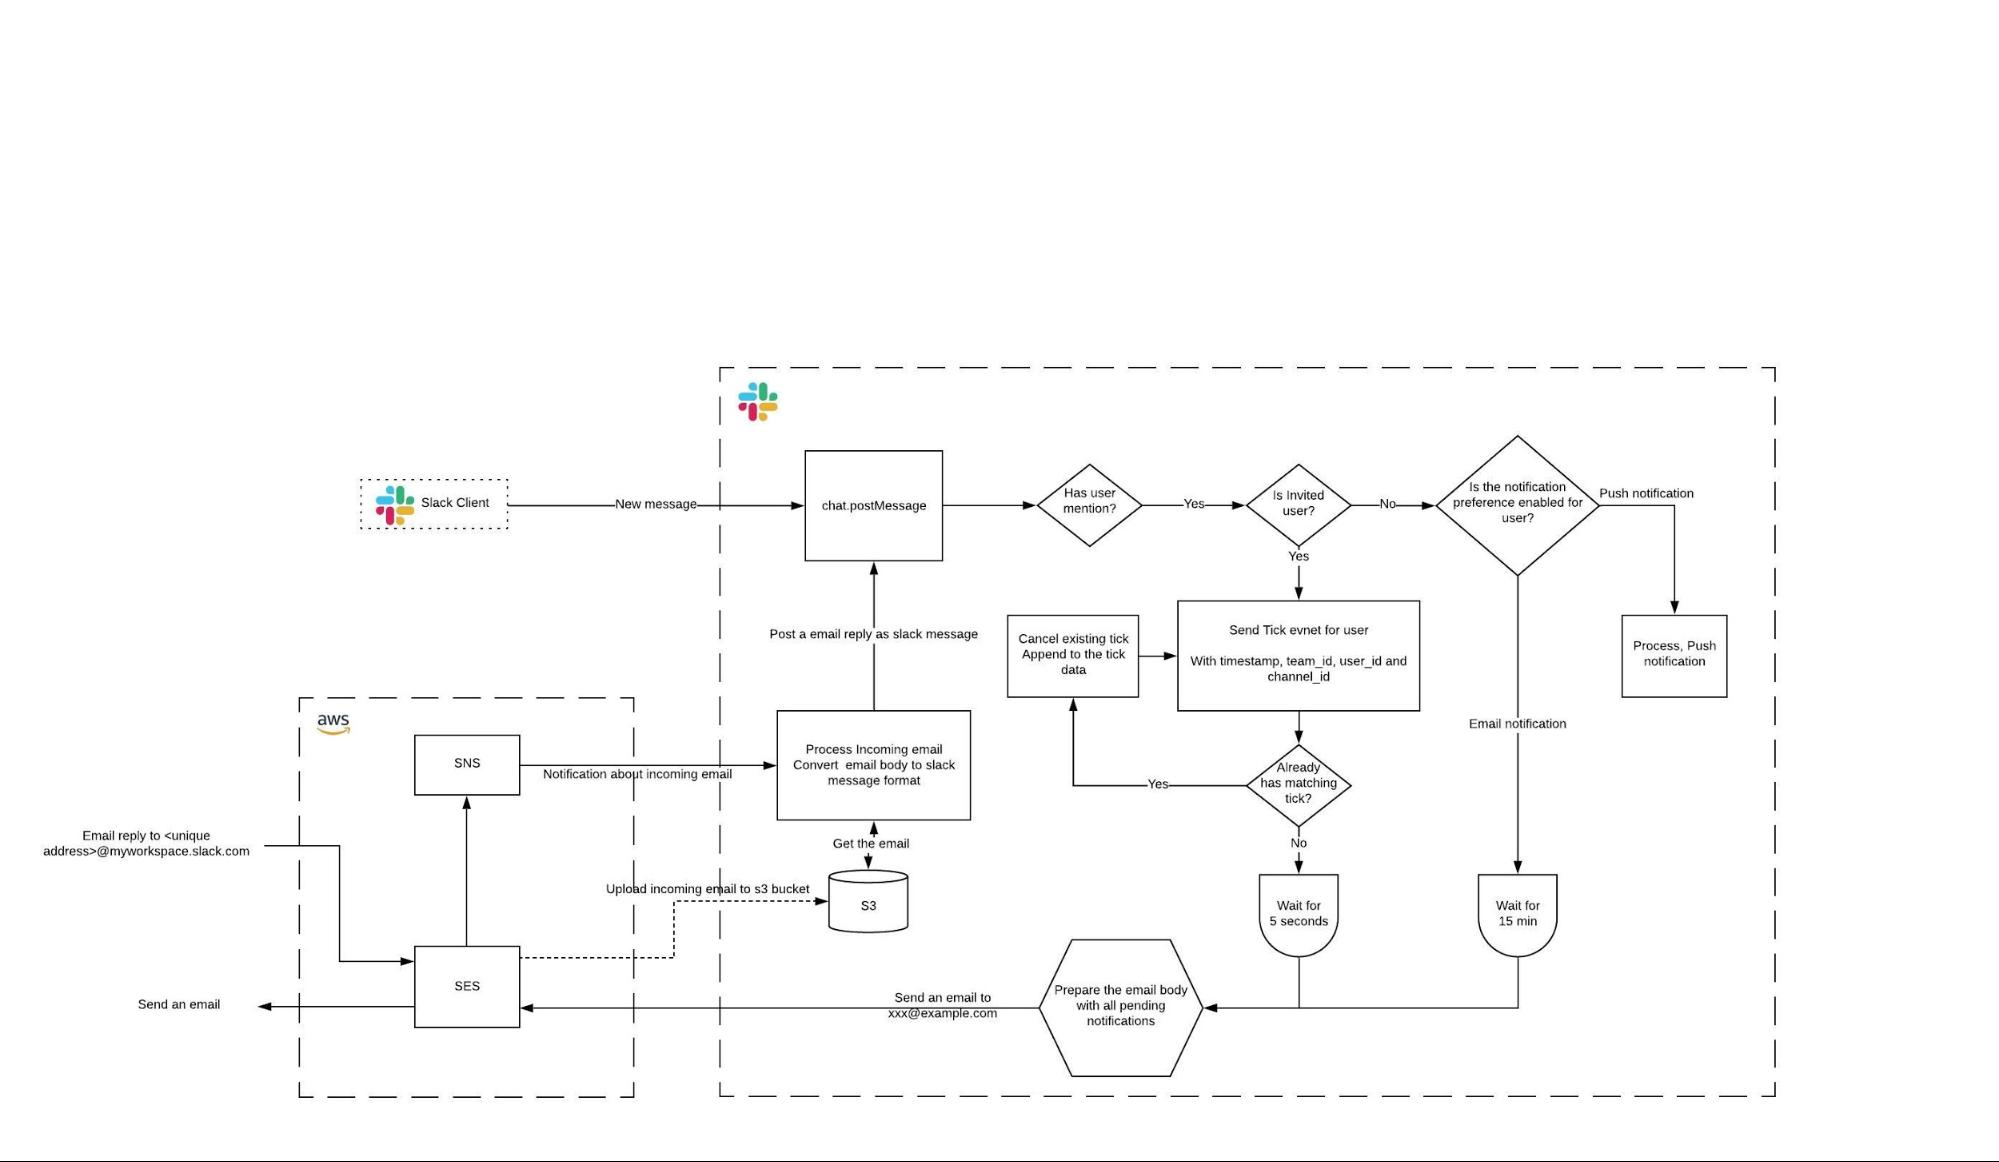 Flow diagram for email notification